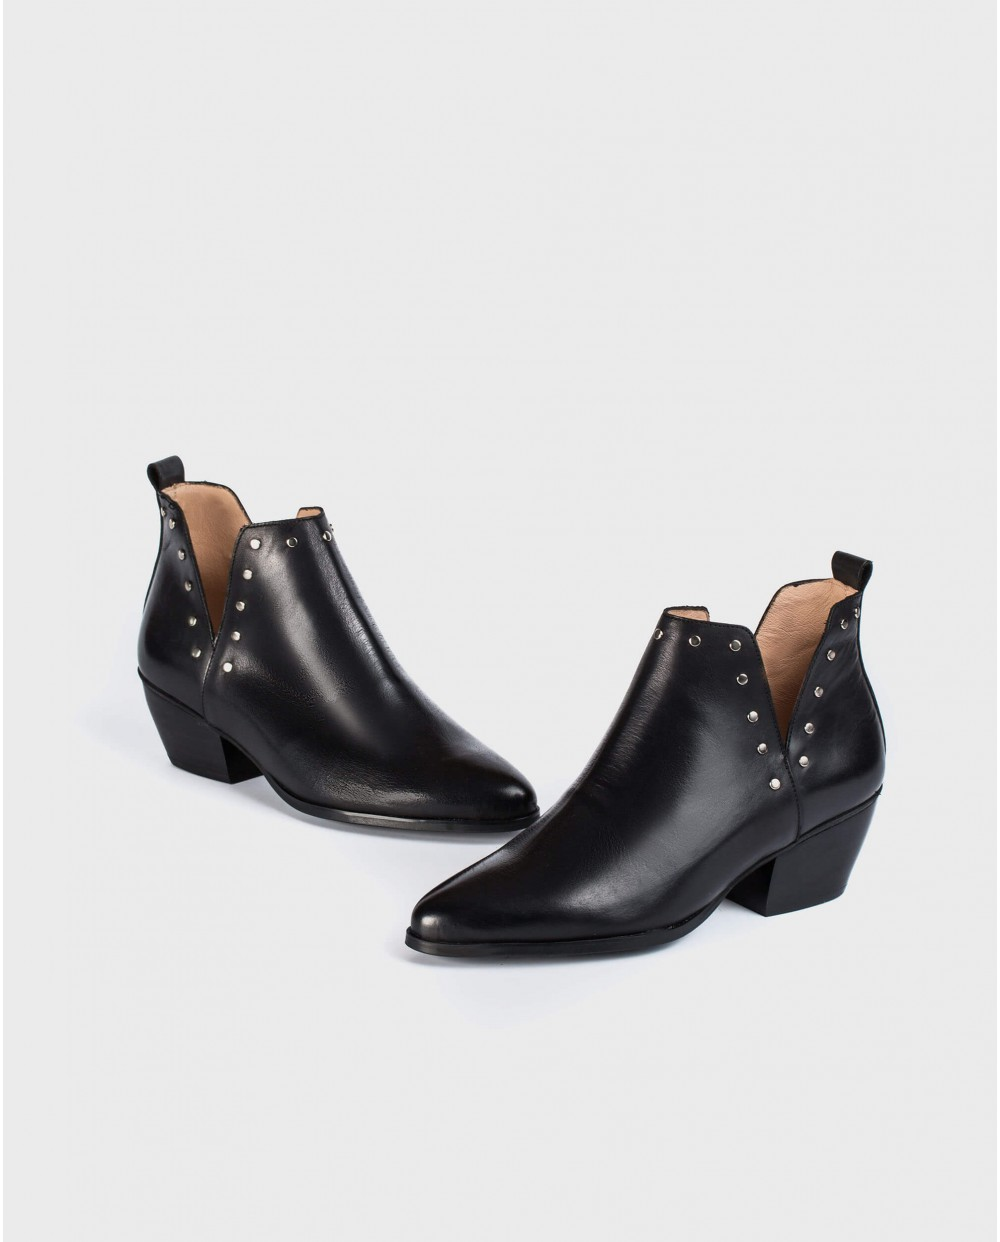 Wonders-Ankle Boots-Cowboy style ankle boot with side cutouts